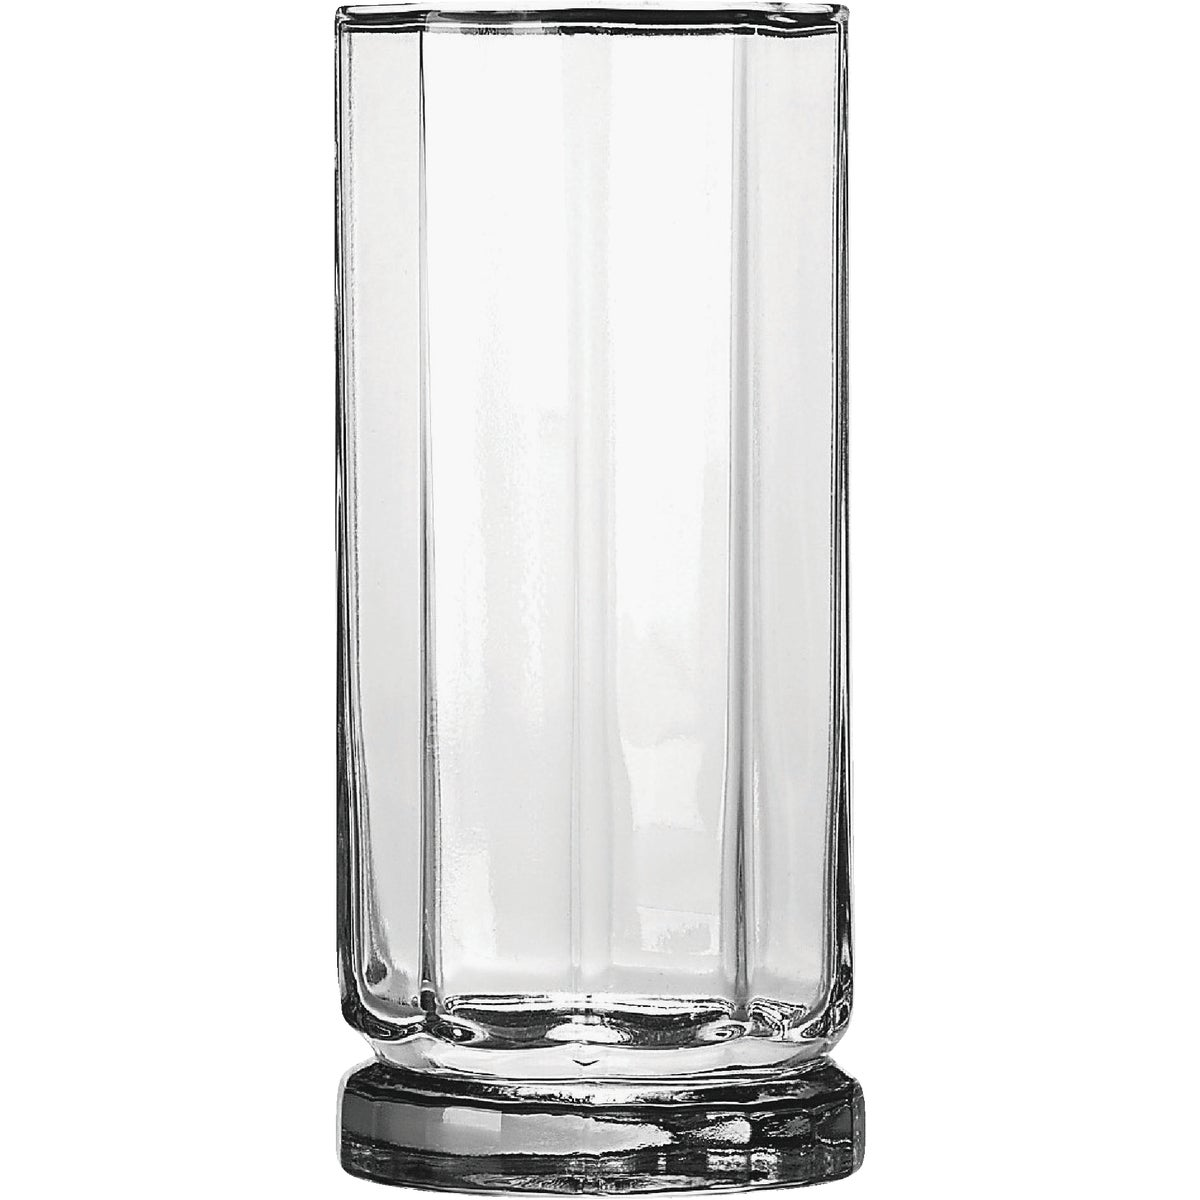 16.5OZ ICE TEA GLASS - 68141L6 by Anchor Hckg Roberts